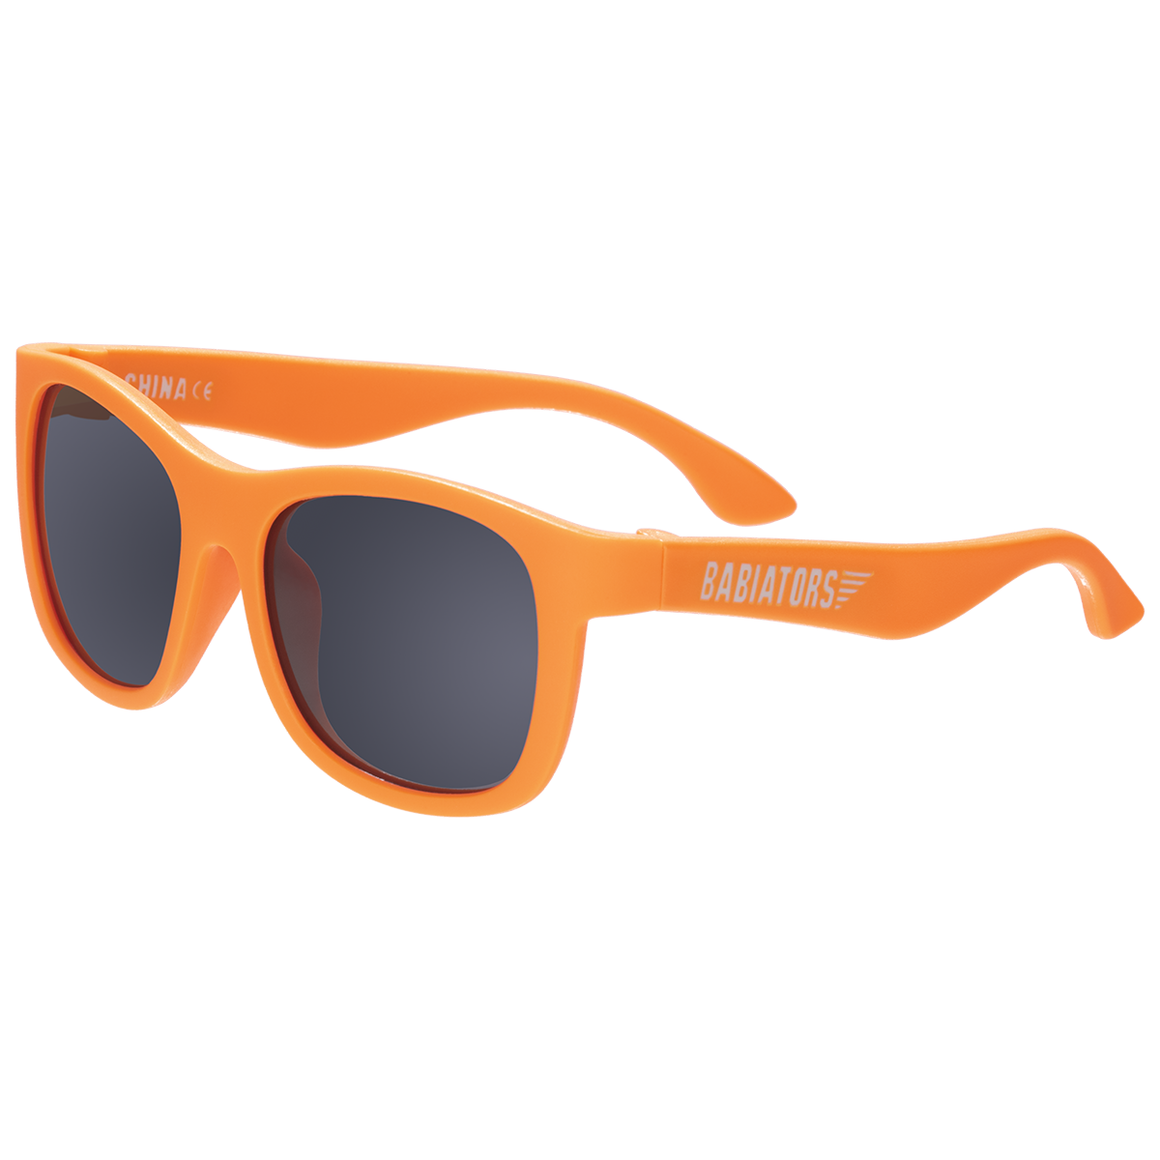 "Original navigator baby and toddler sunglasses in orange ""crush"". 100% UVA and UVB protection. Babiators."